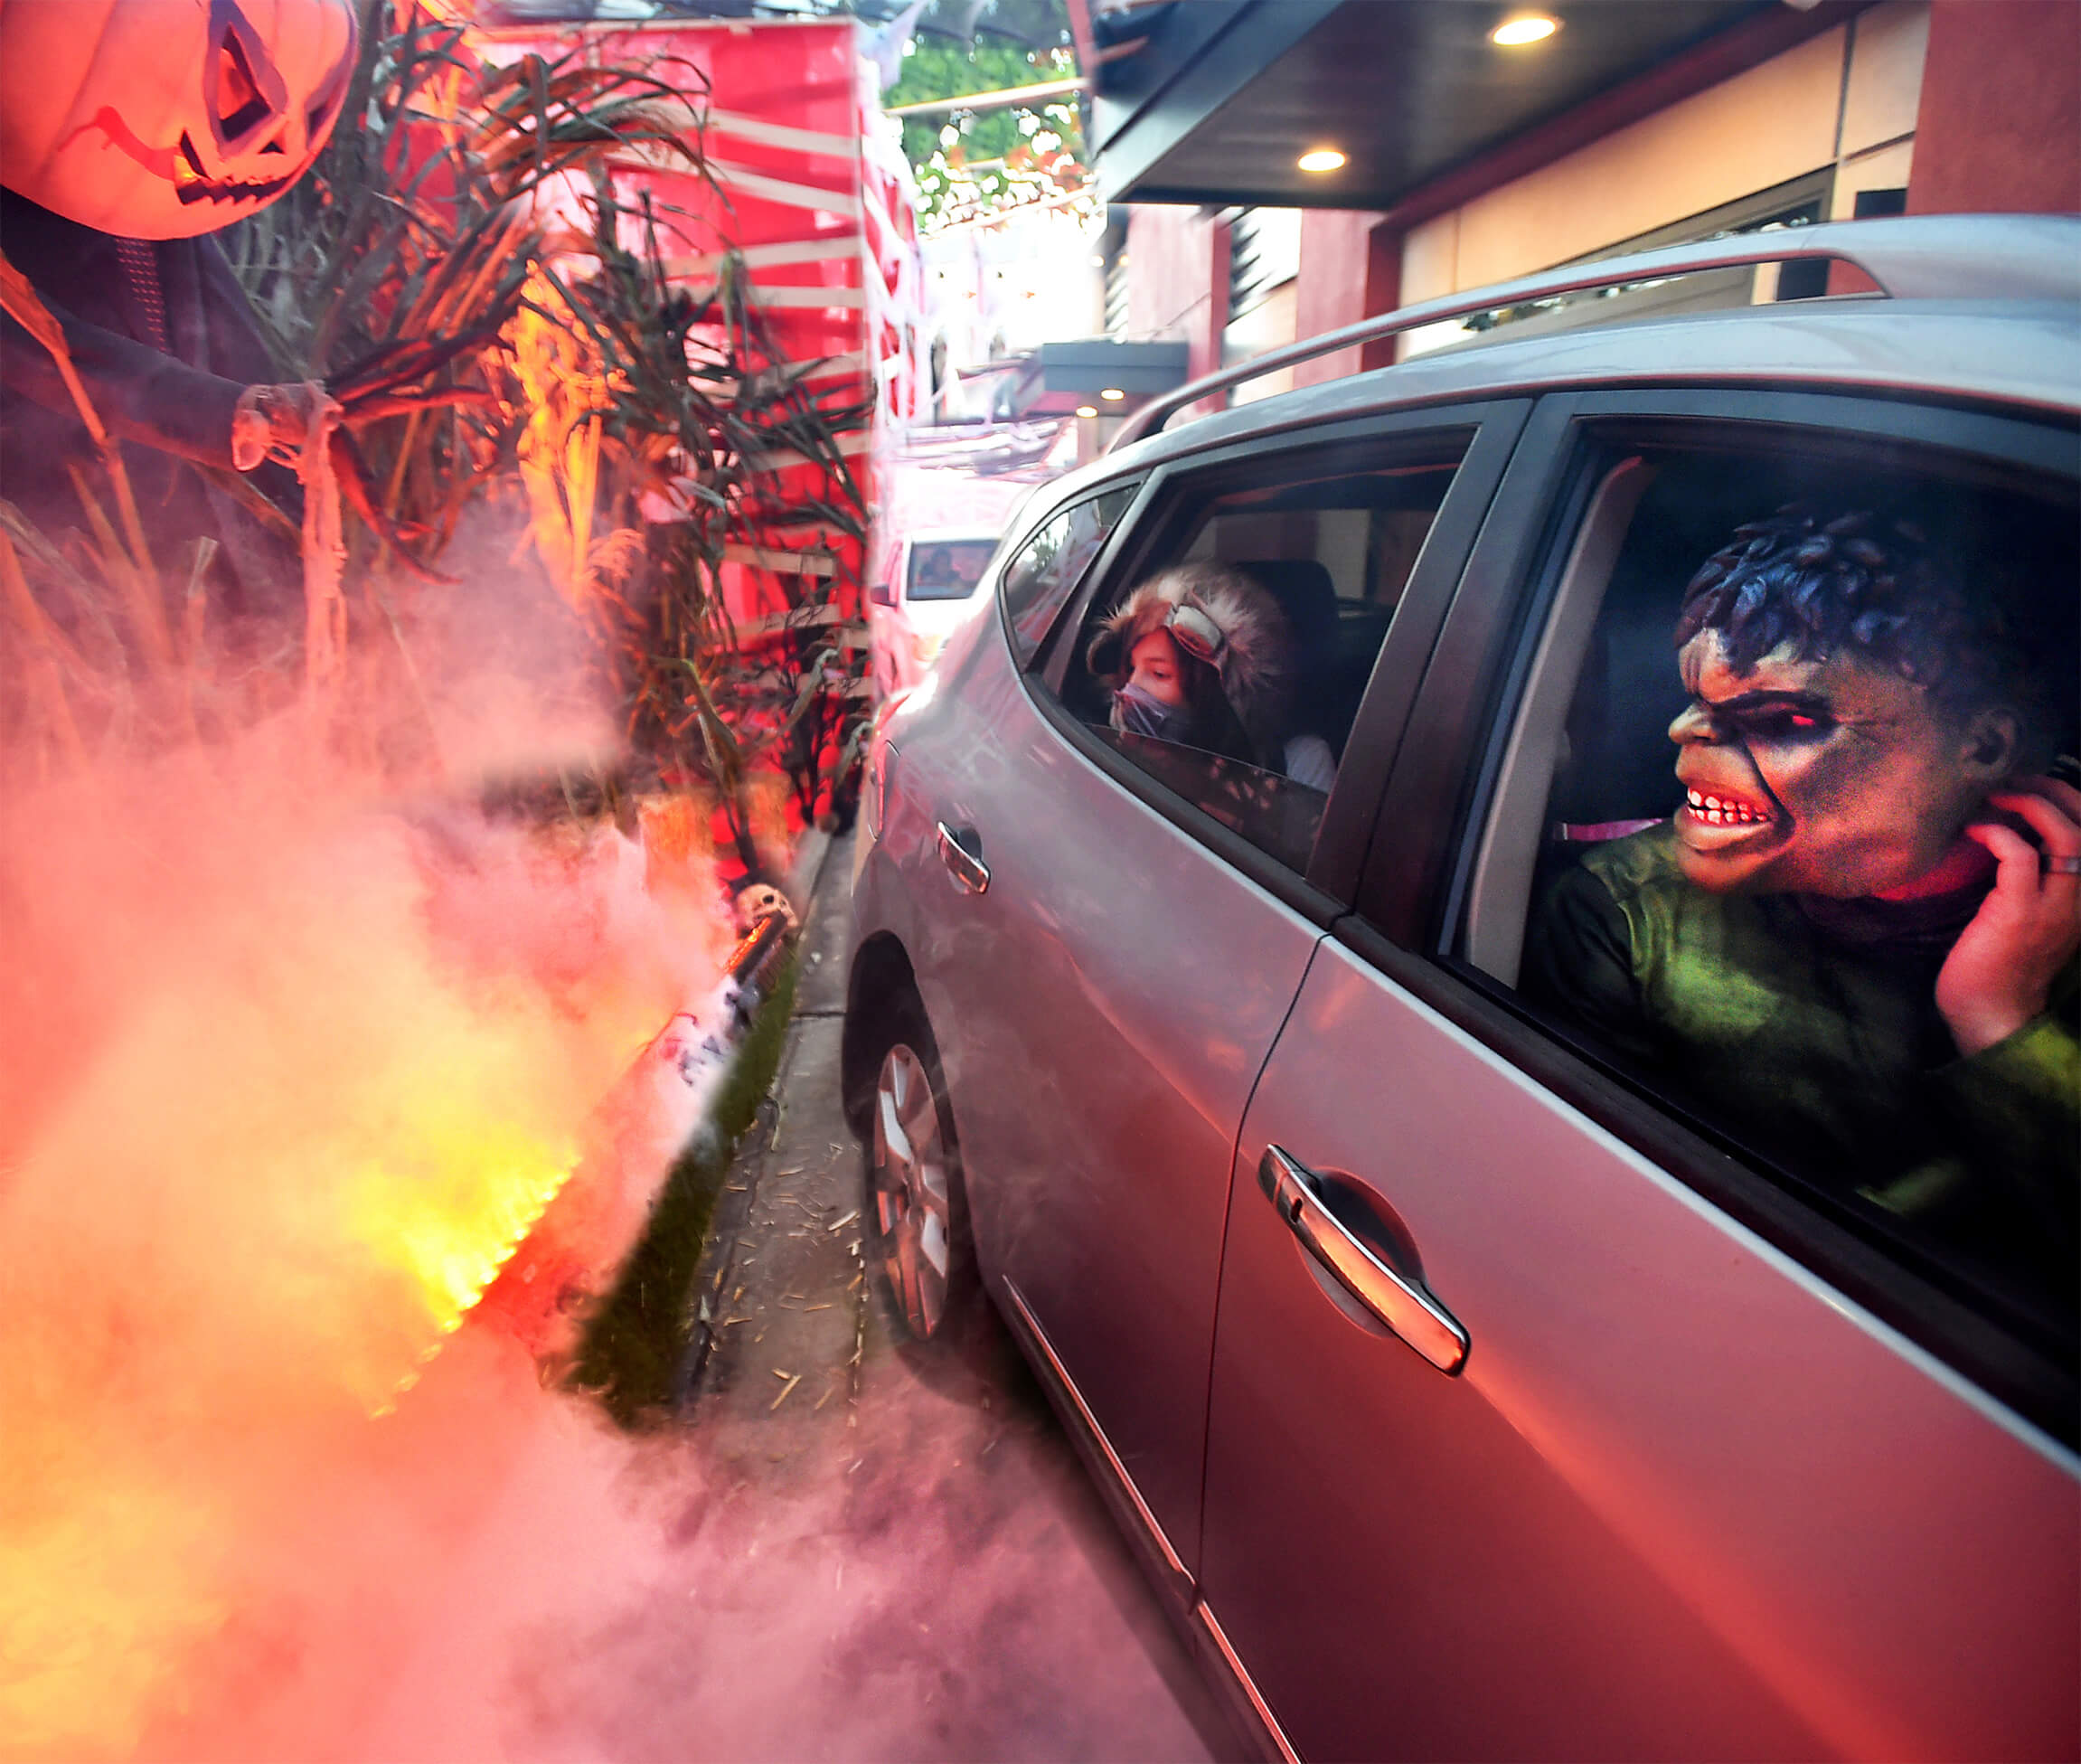 TMA and Wendy's teamed up to save Halloween, turning a Wendy's drive thru in Los Angeles into a one-of-a-kind haunted house. Open for three days with a sustained five-hour long line, the Wendy's Scare Thru delighted hungry fans looking for some pandemic safe and spooky fun.